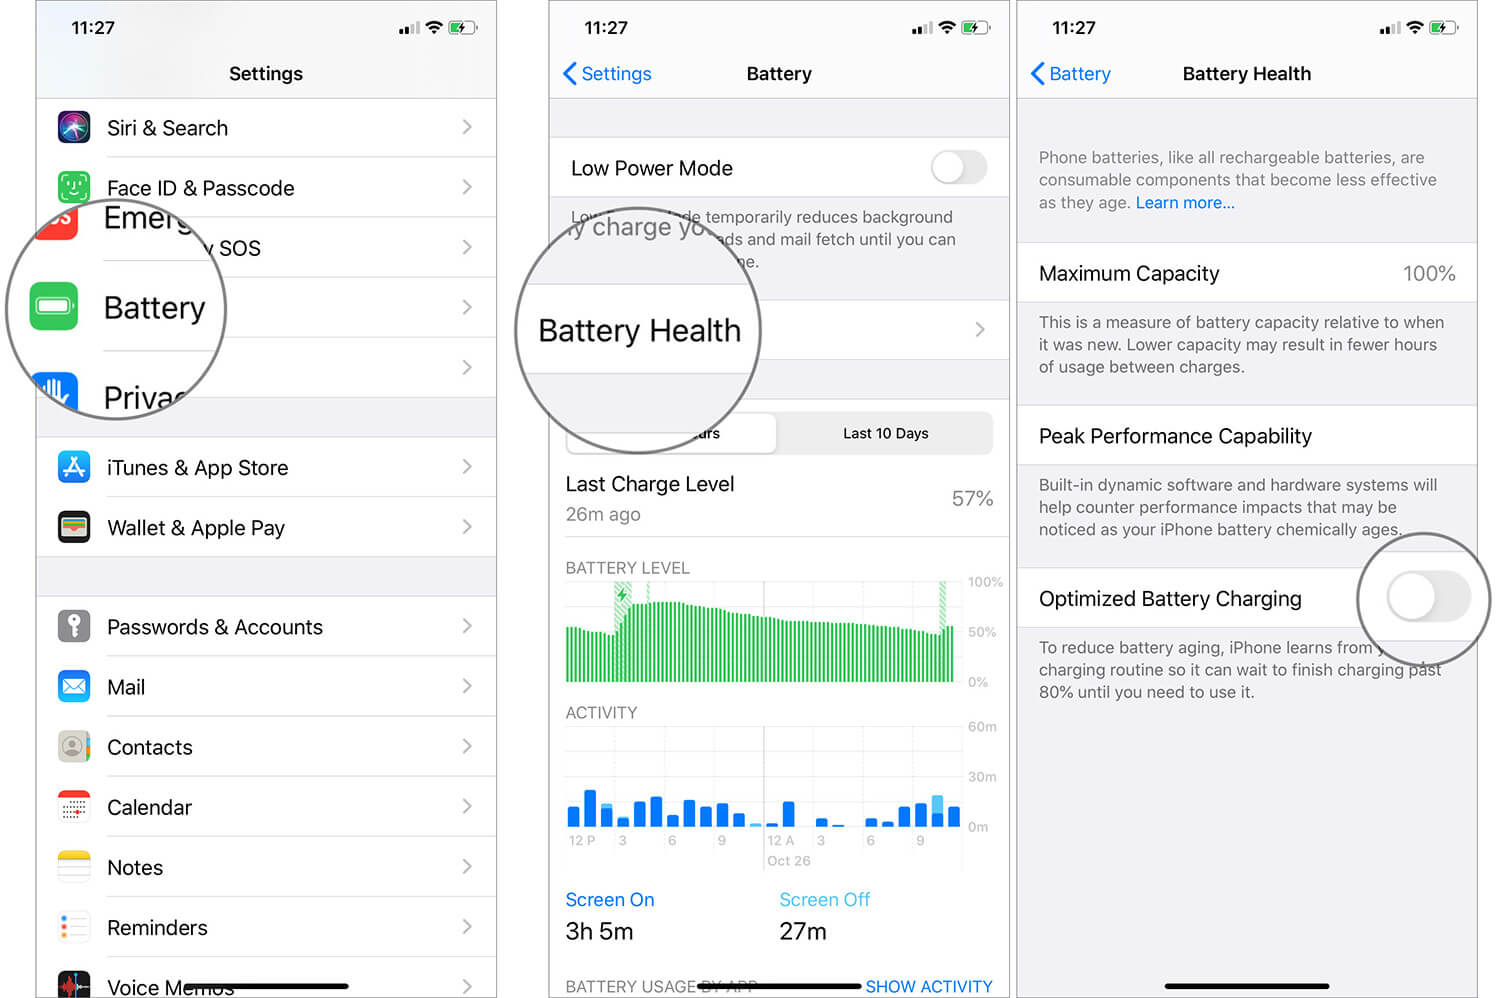 Disabling the Optimized Battery Charging on iPhone 11